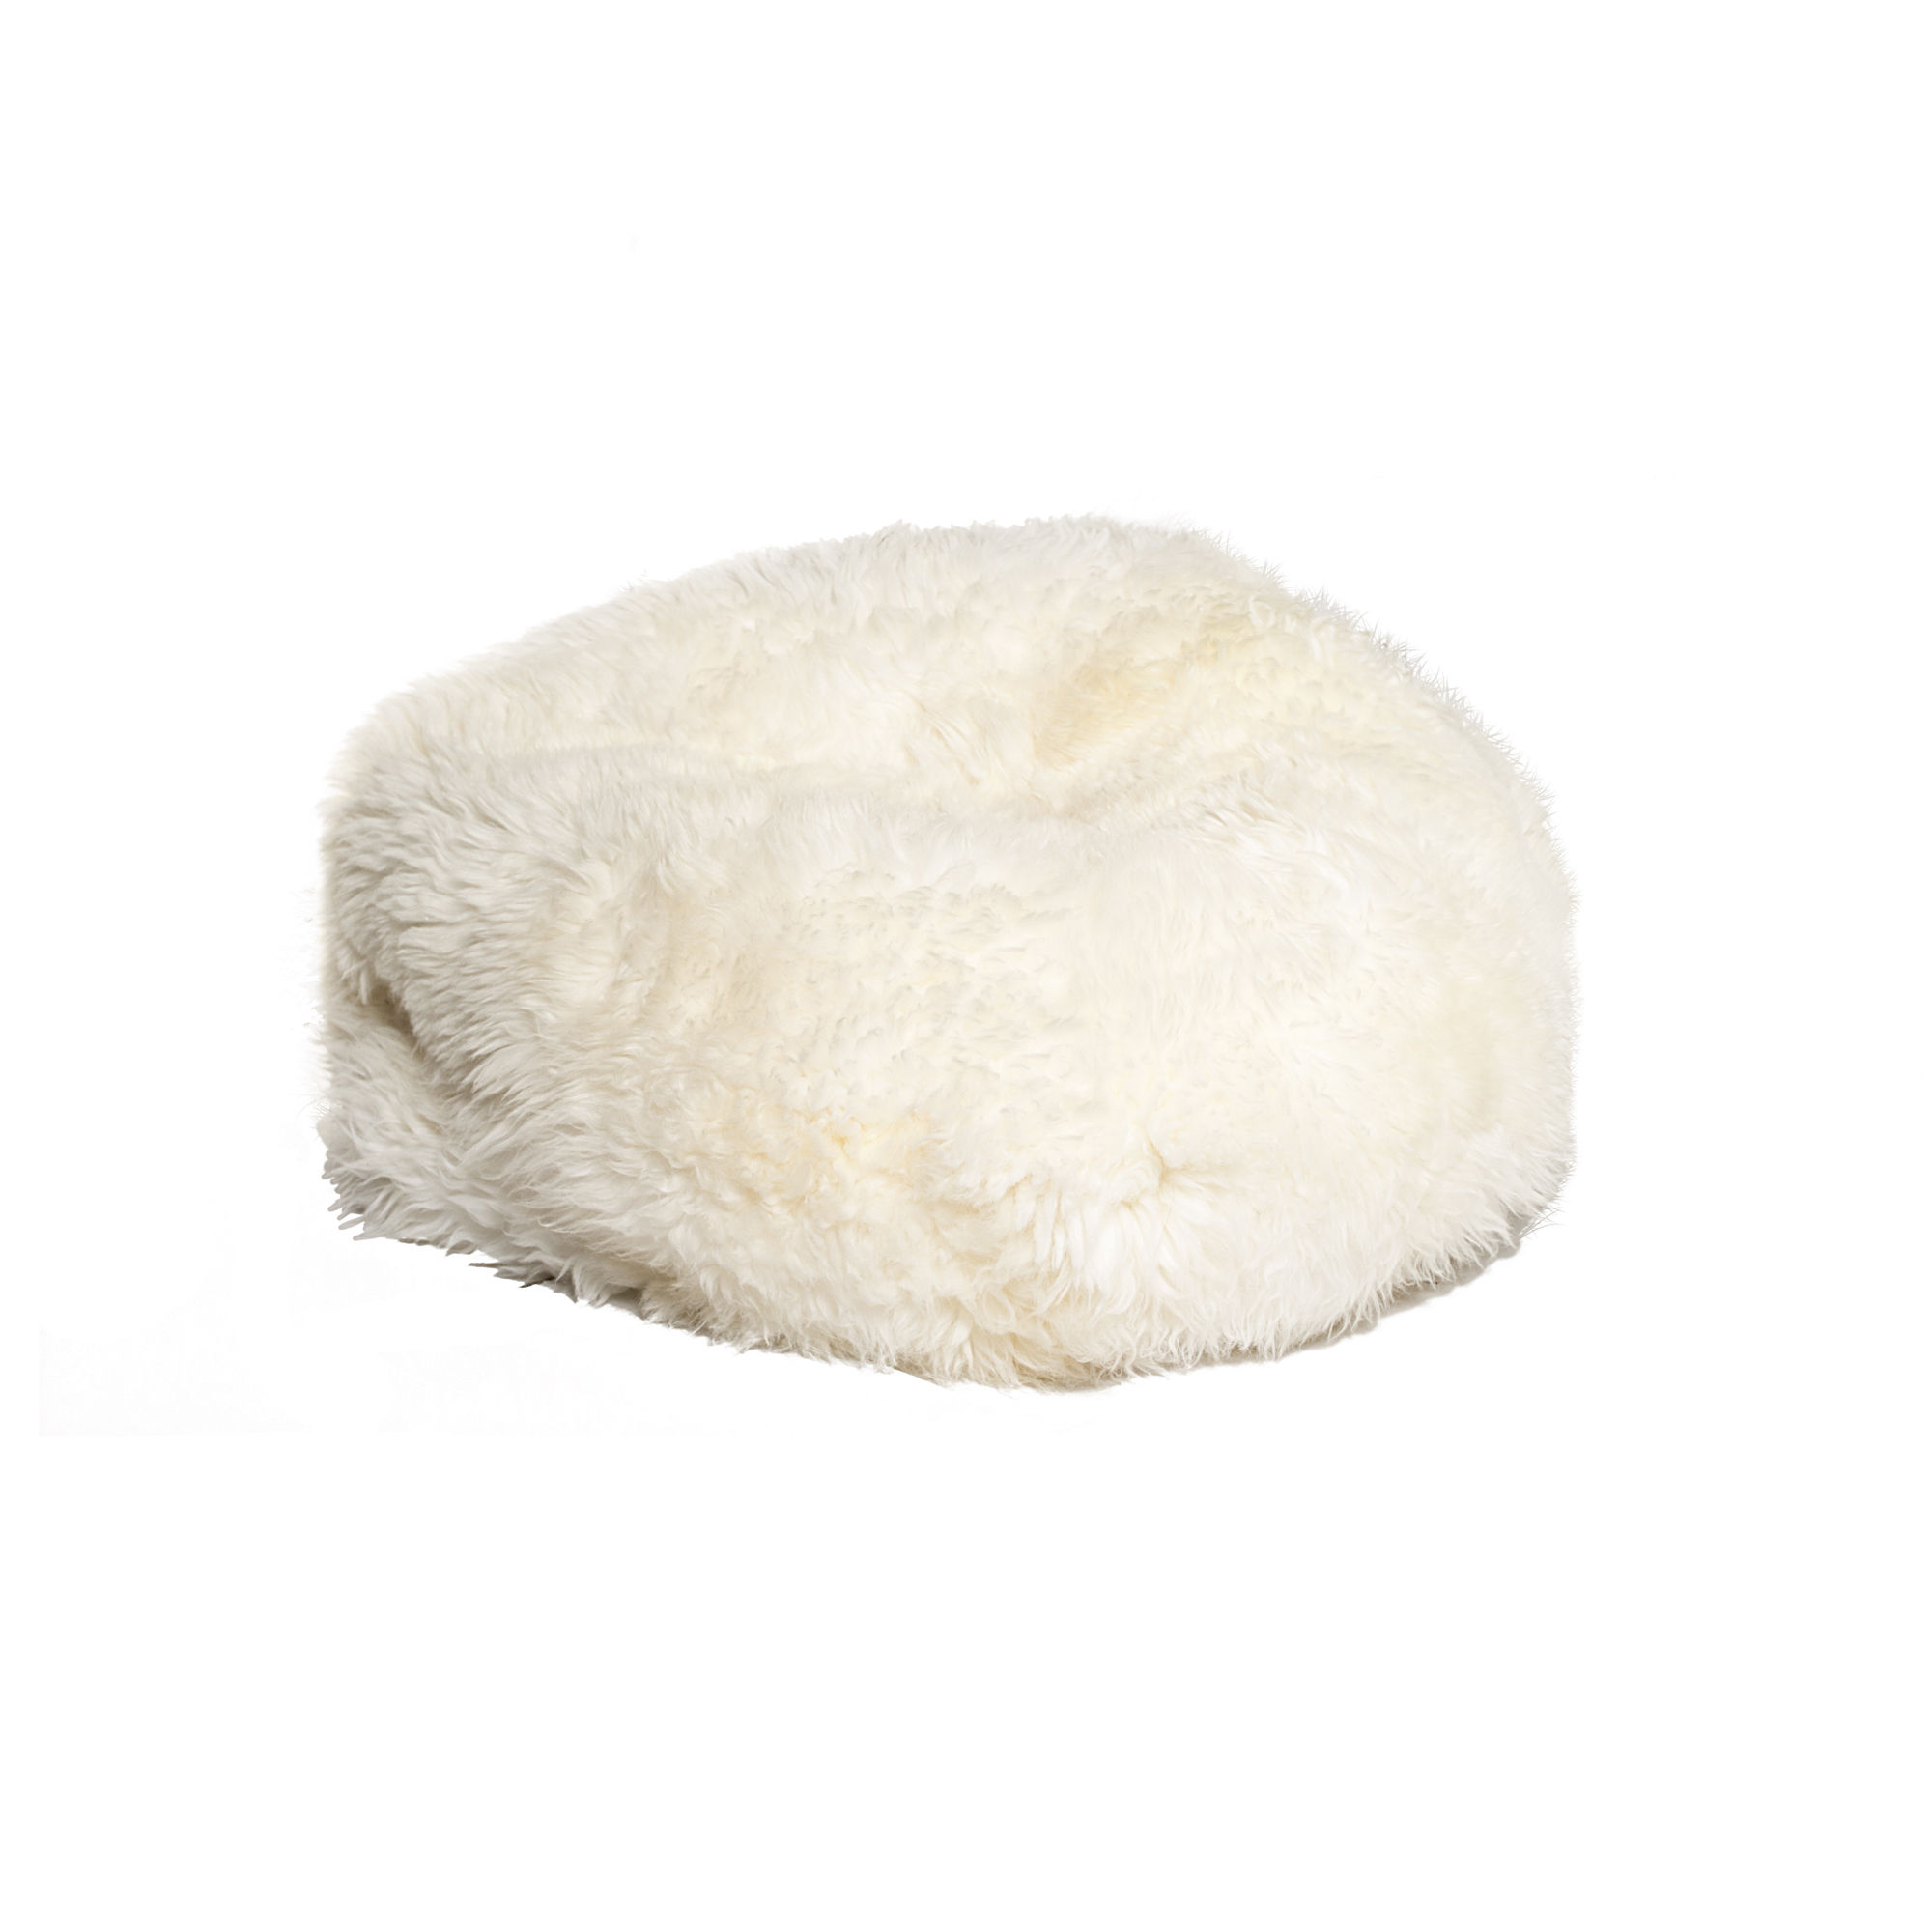 Enjoyable Home Roots White Sheepskin Bean Bag Chair The Classy Home Pdpeps Interior Chair Design Pdpepsorg